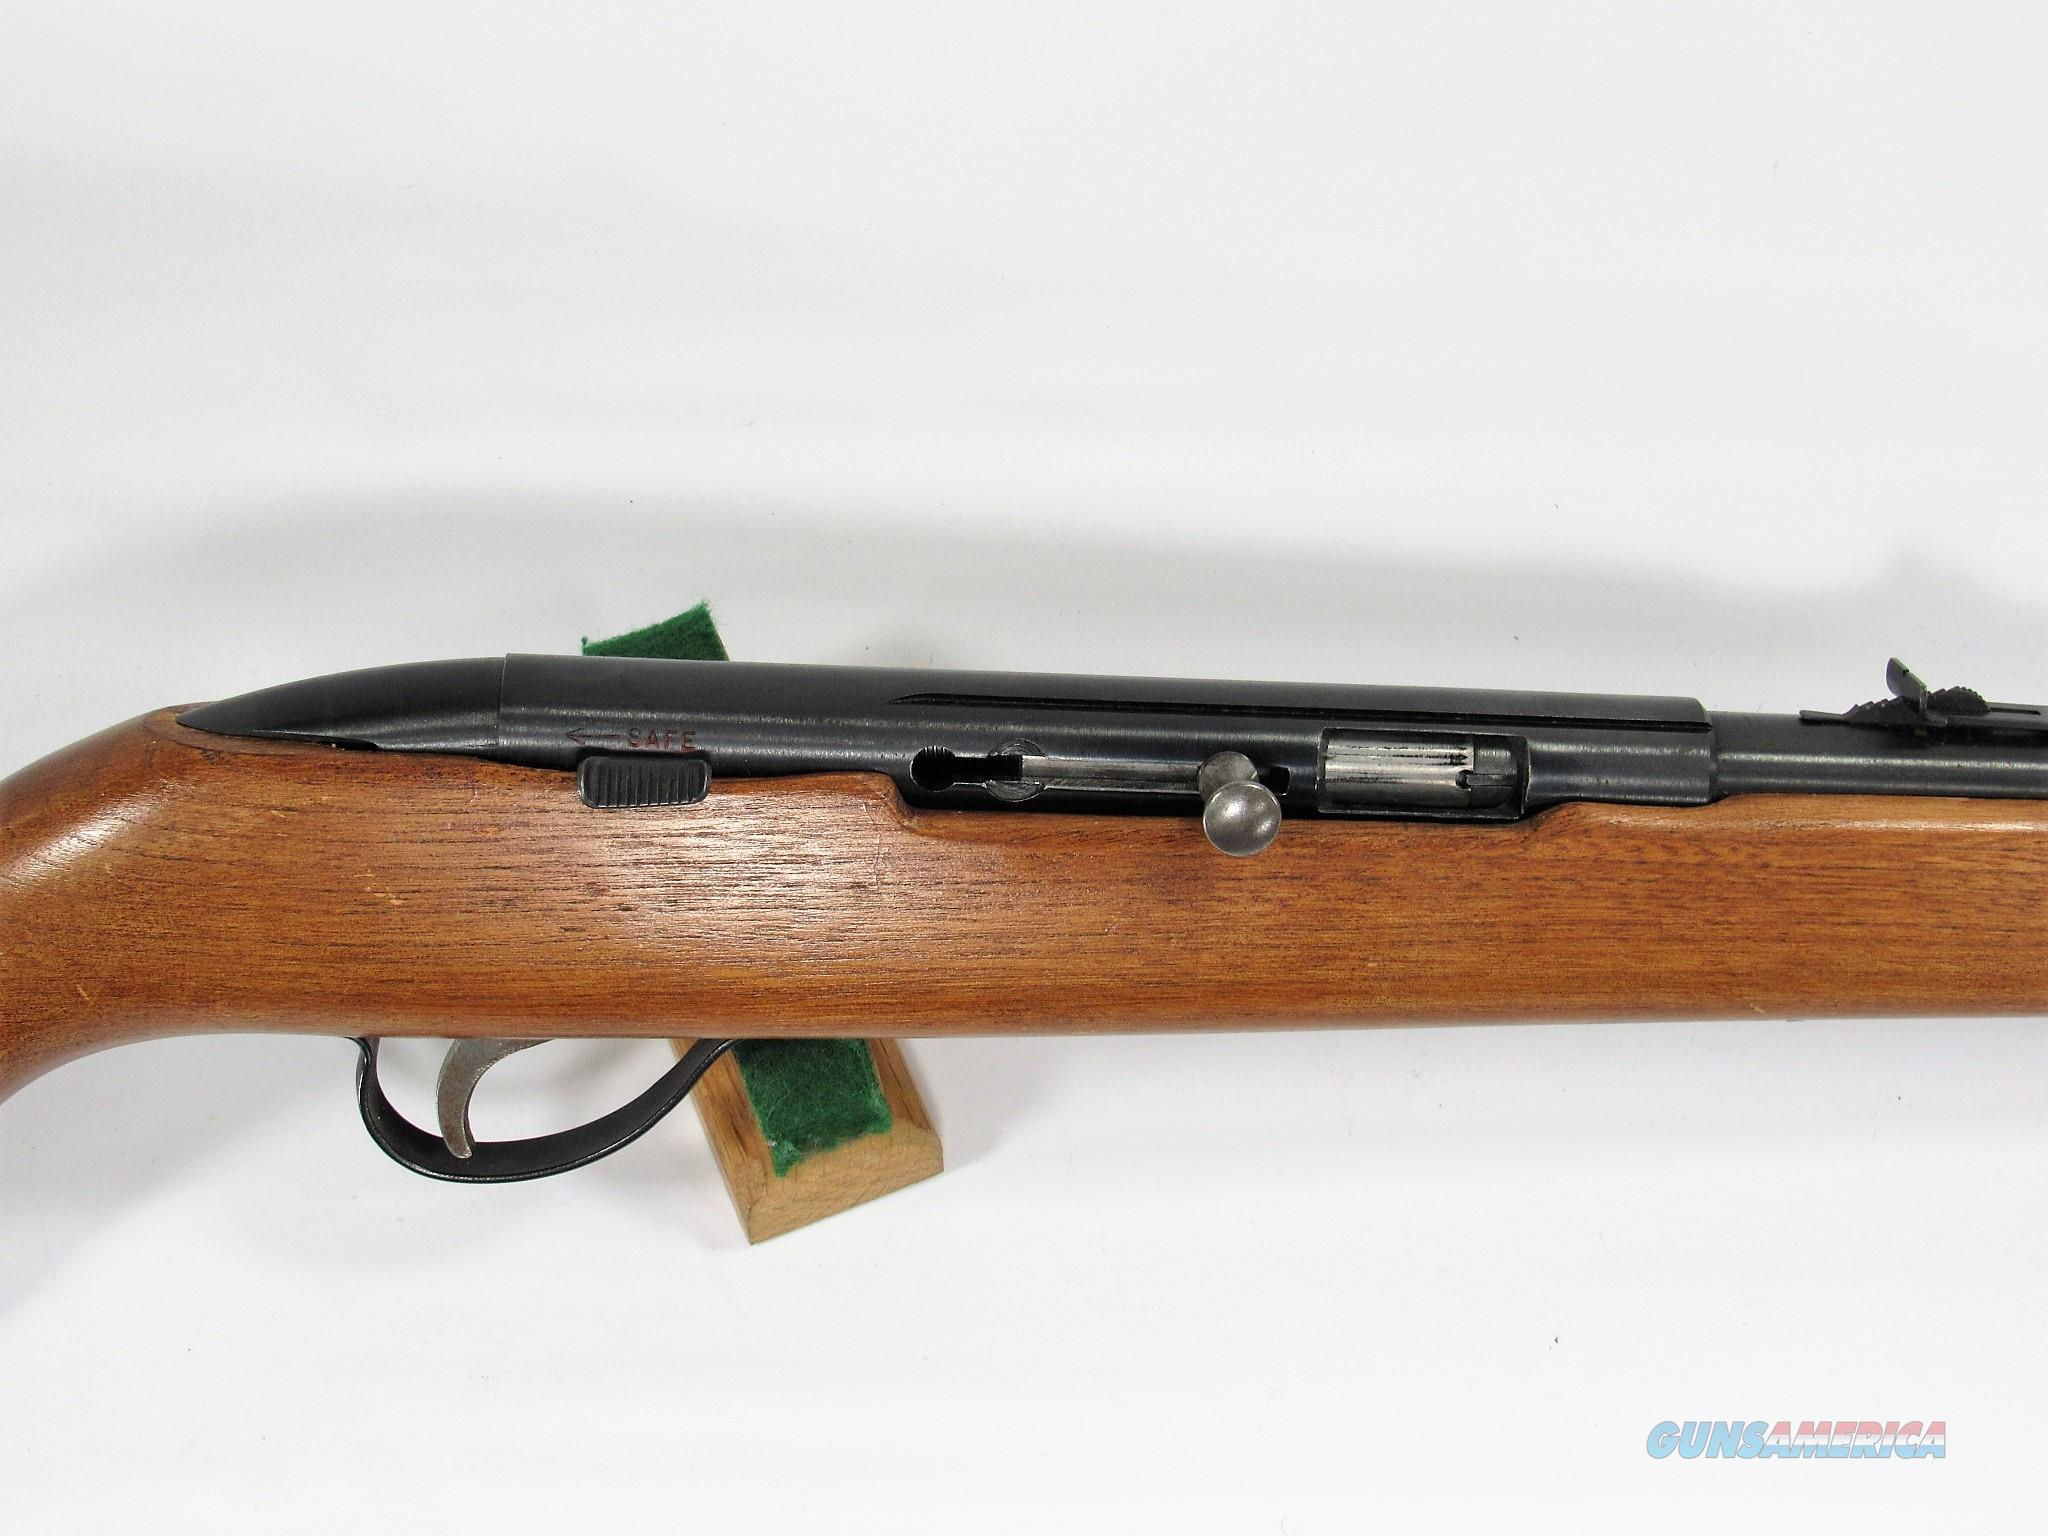 17Y SEARS MODEL 25 (STEVENS) 22LR SEMI  Guns > Rifles > Stevens Rifles